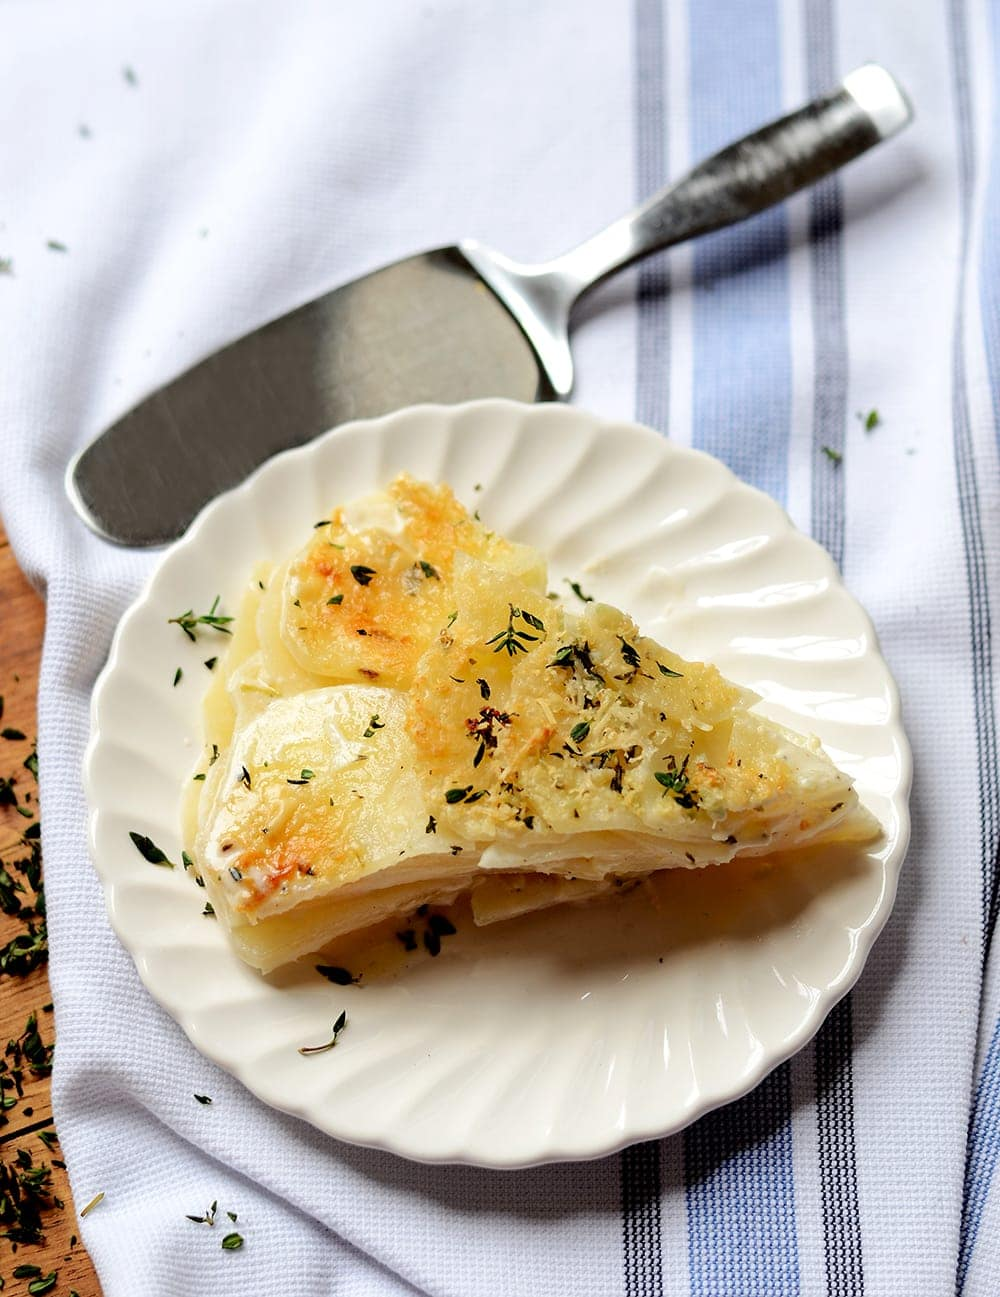 Lemon Thyme Potatoes au Gratin are filled with savory, sharp lemon flavor. This dish is also creamy and loaded with fresh garlic, thyme and Parmesan cheese making it a rich and complex side dish. | vintagekitty.com